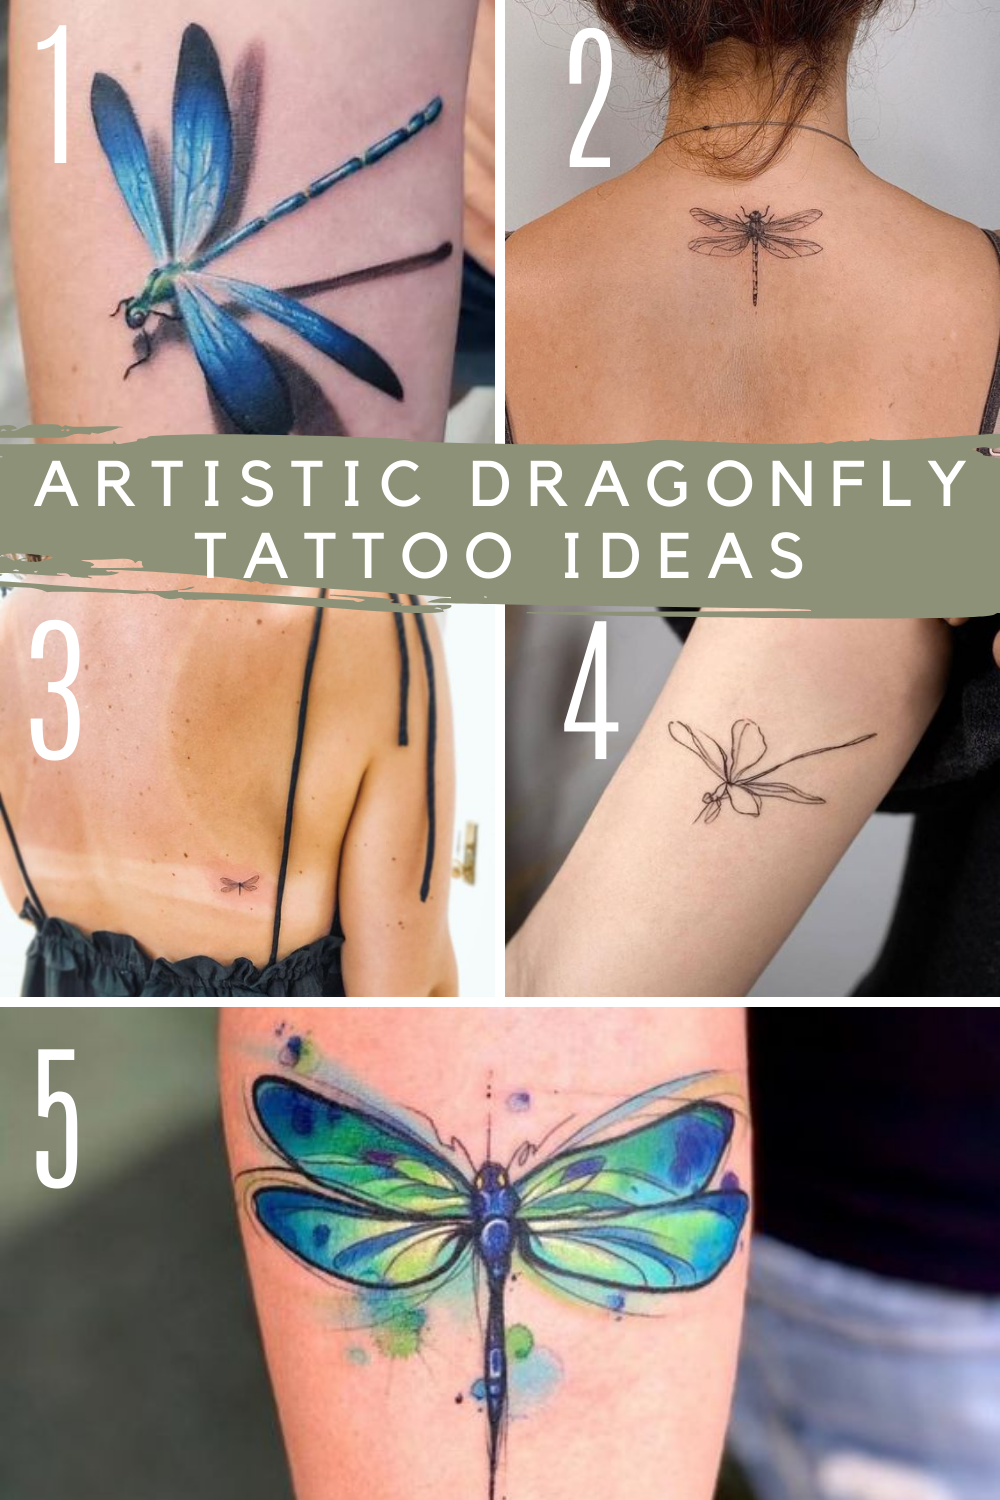 Artistic Designs Of Dragonfly Tattoos